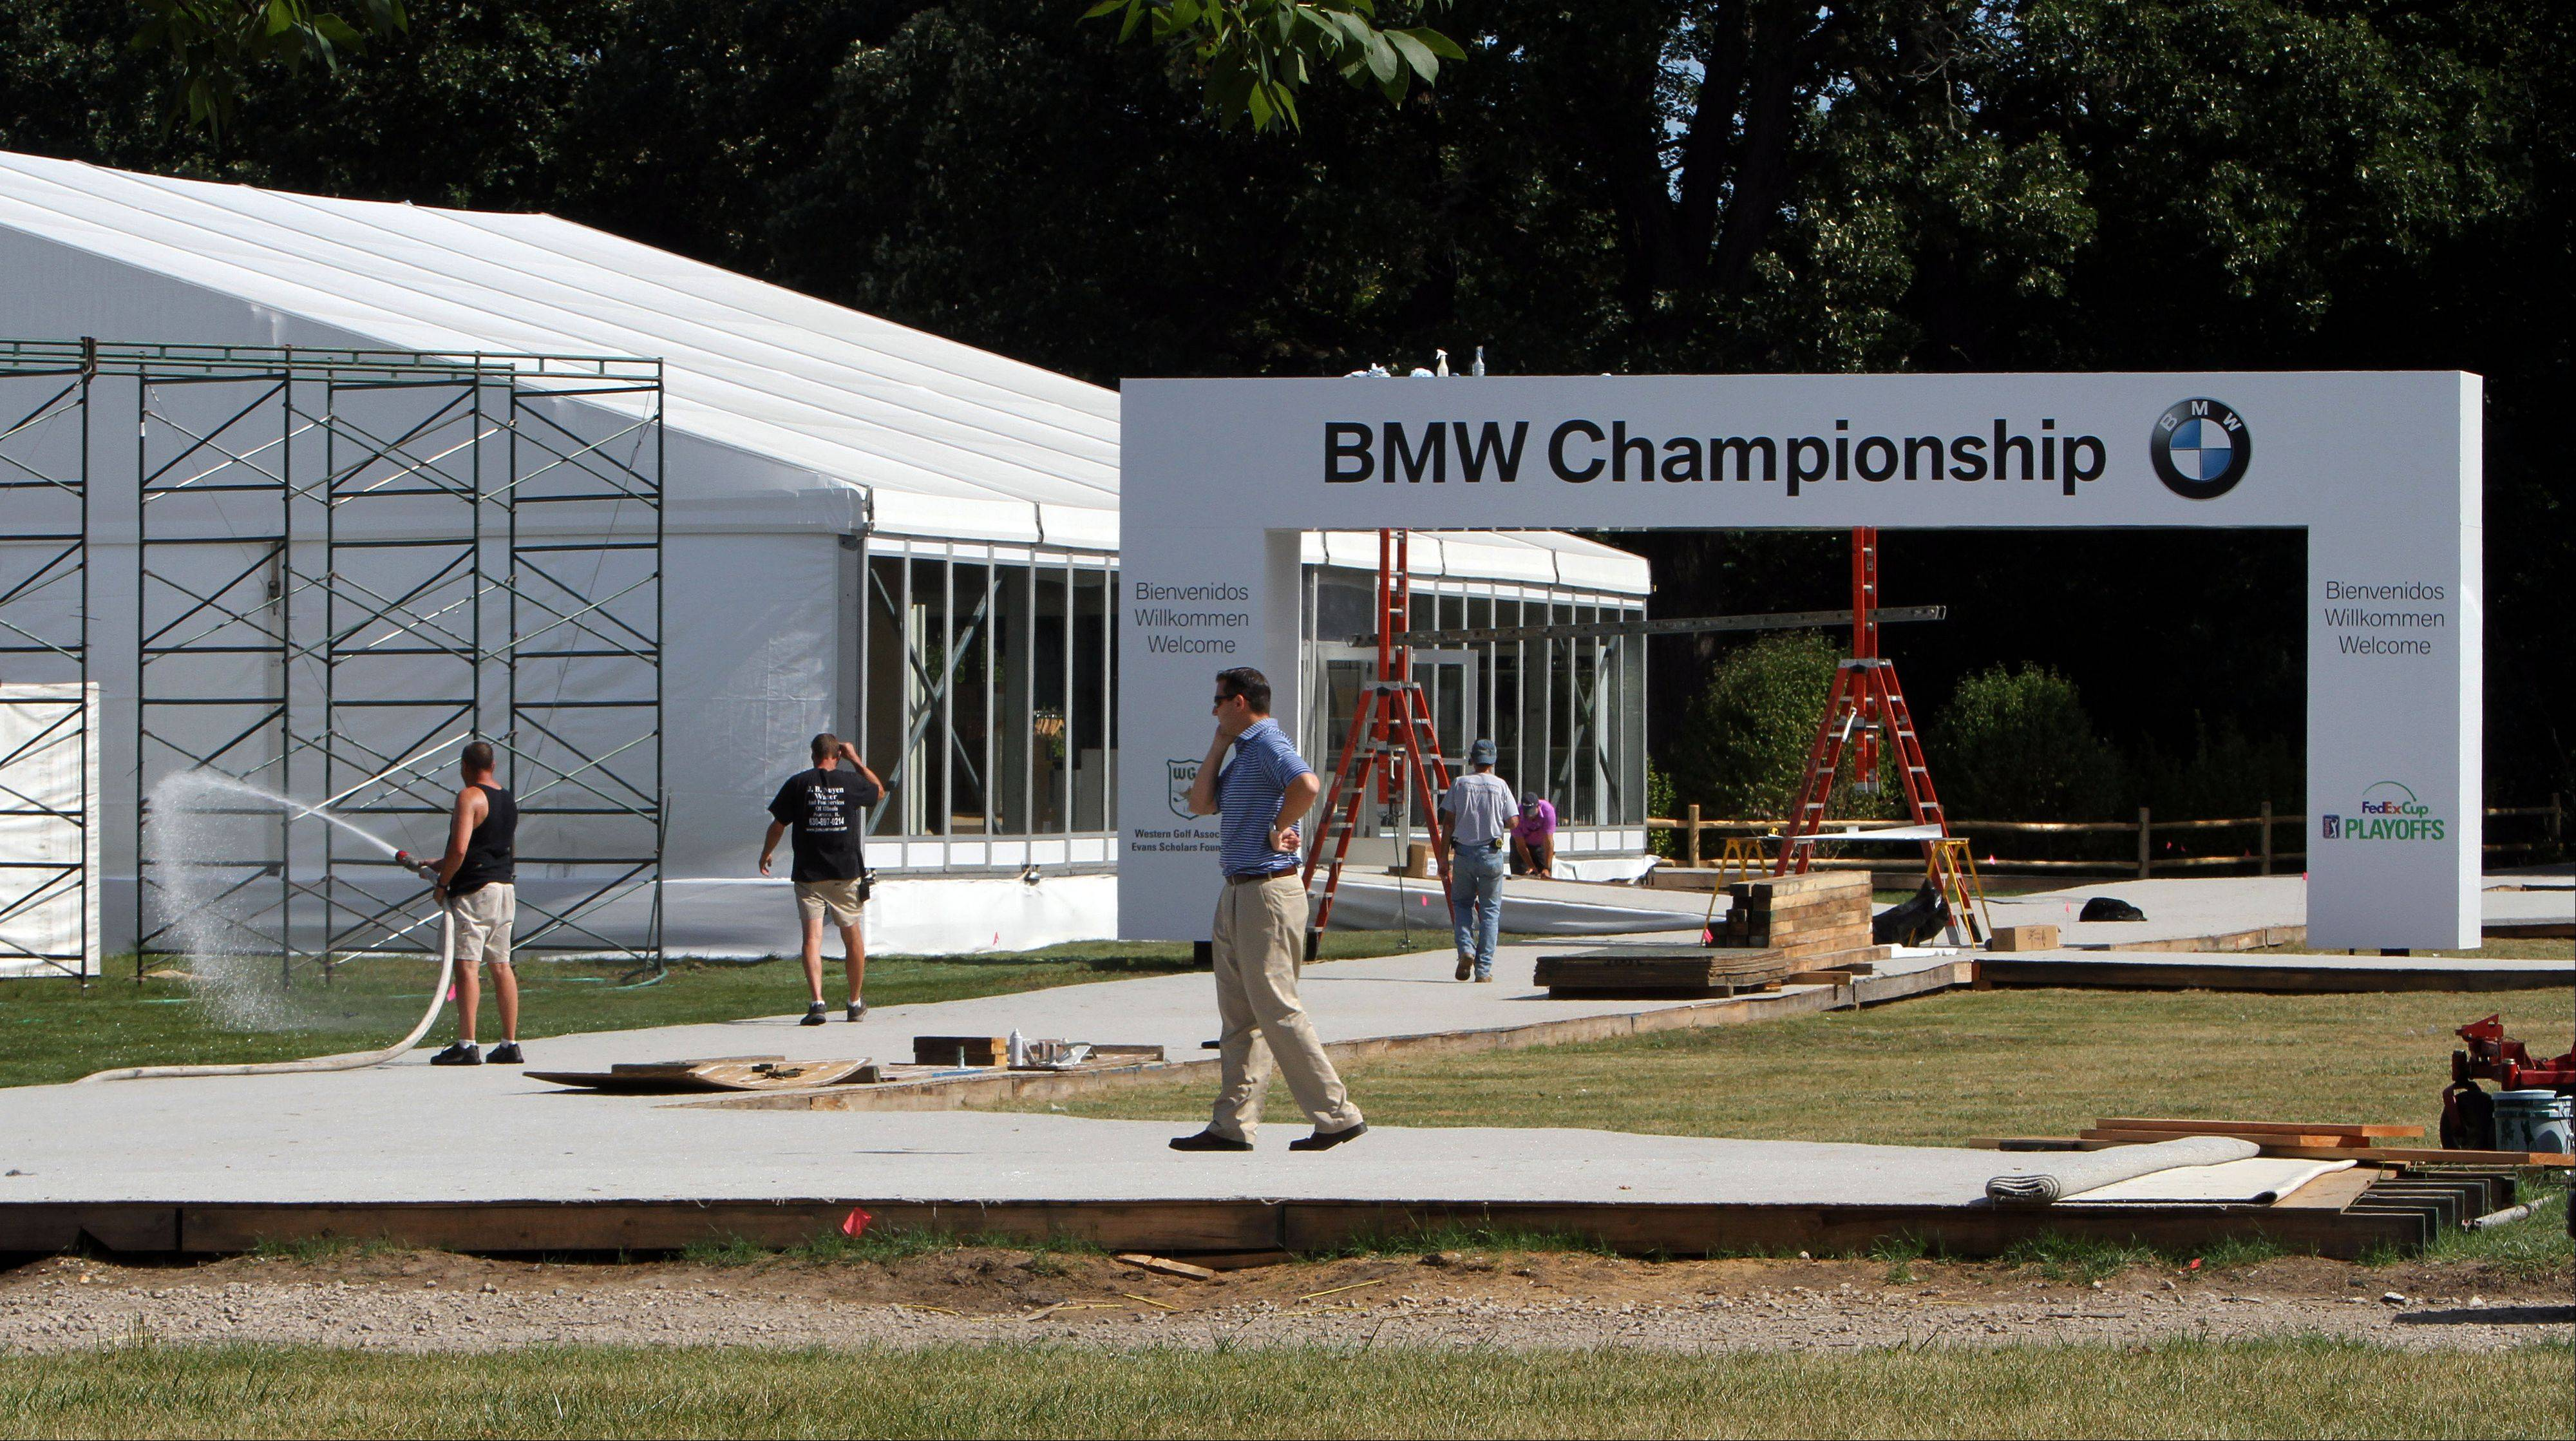 The entrance to the BMW Championship at Conway Farms in Lake Forest is taking shape. The four-day tournament begins Thursday.